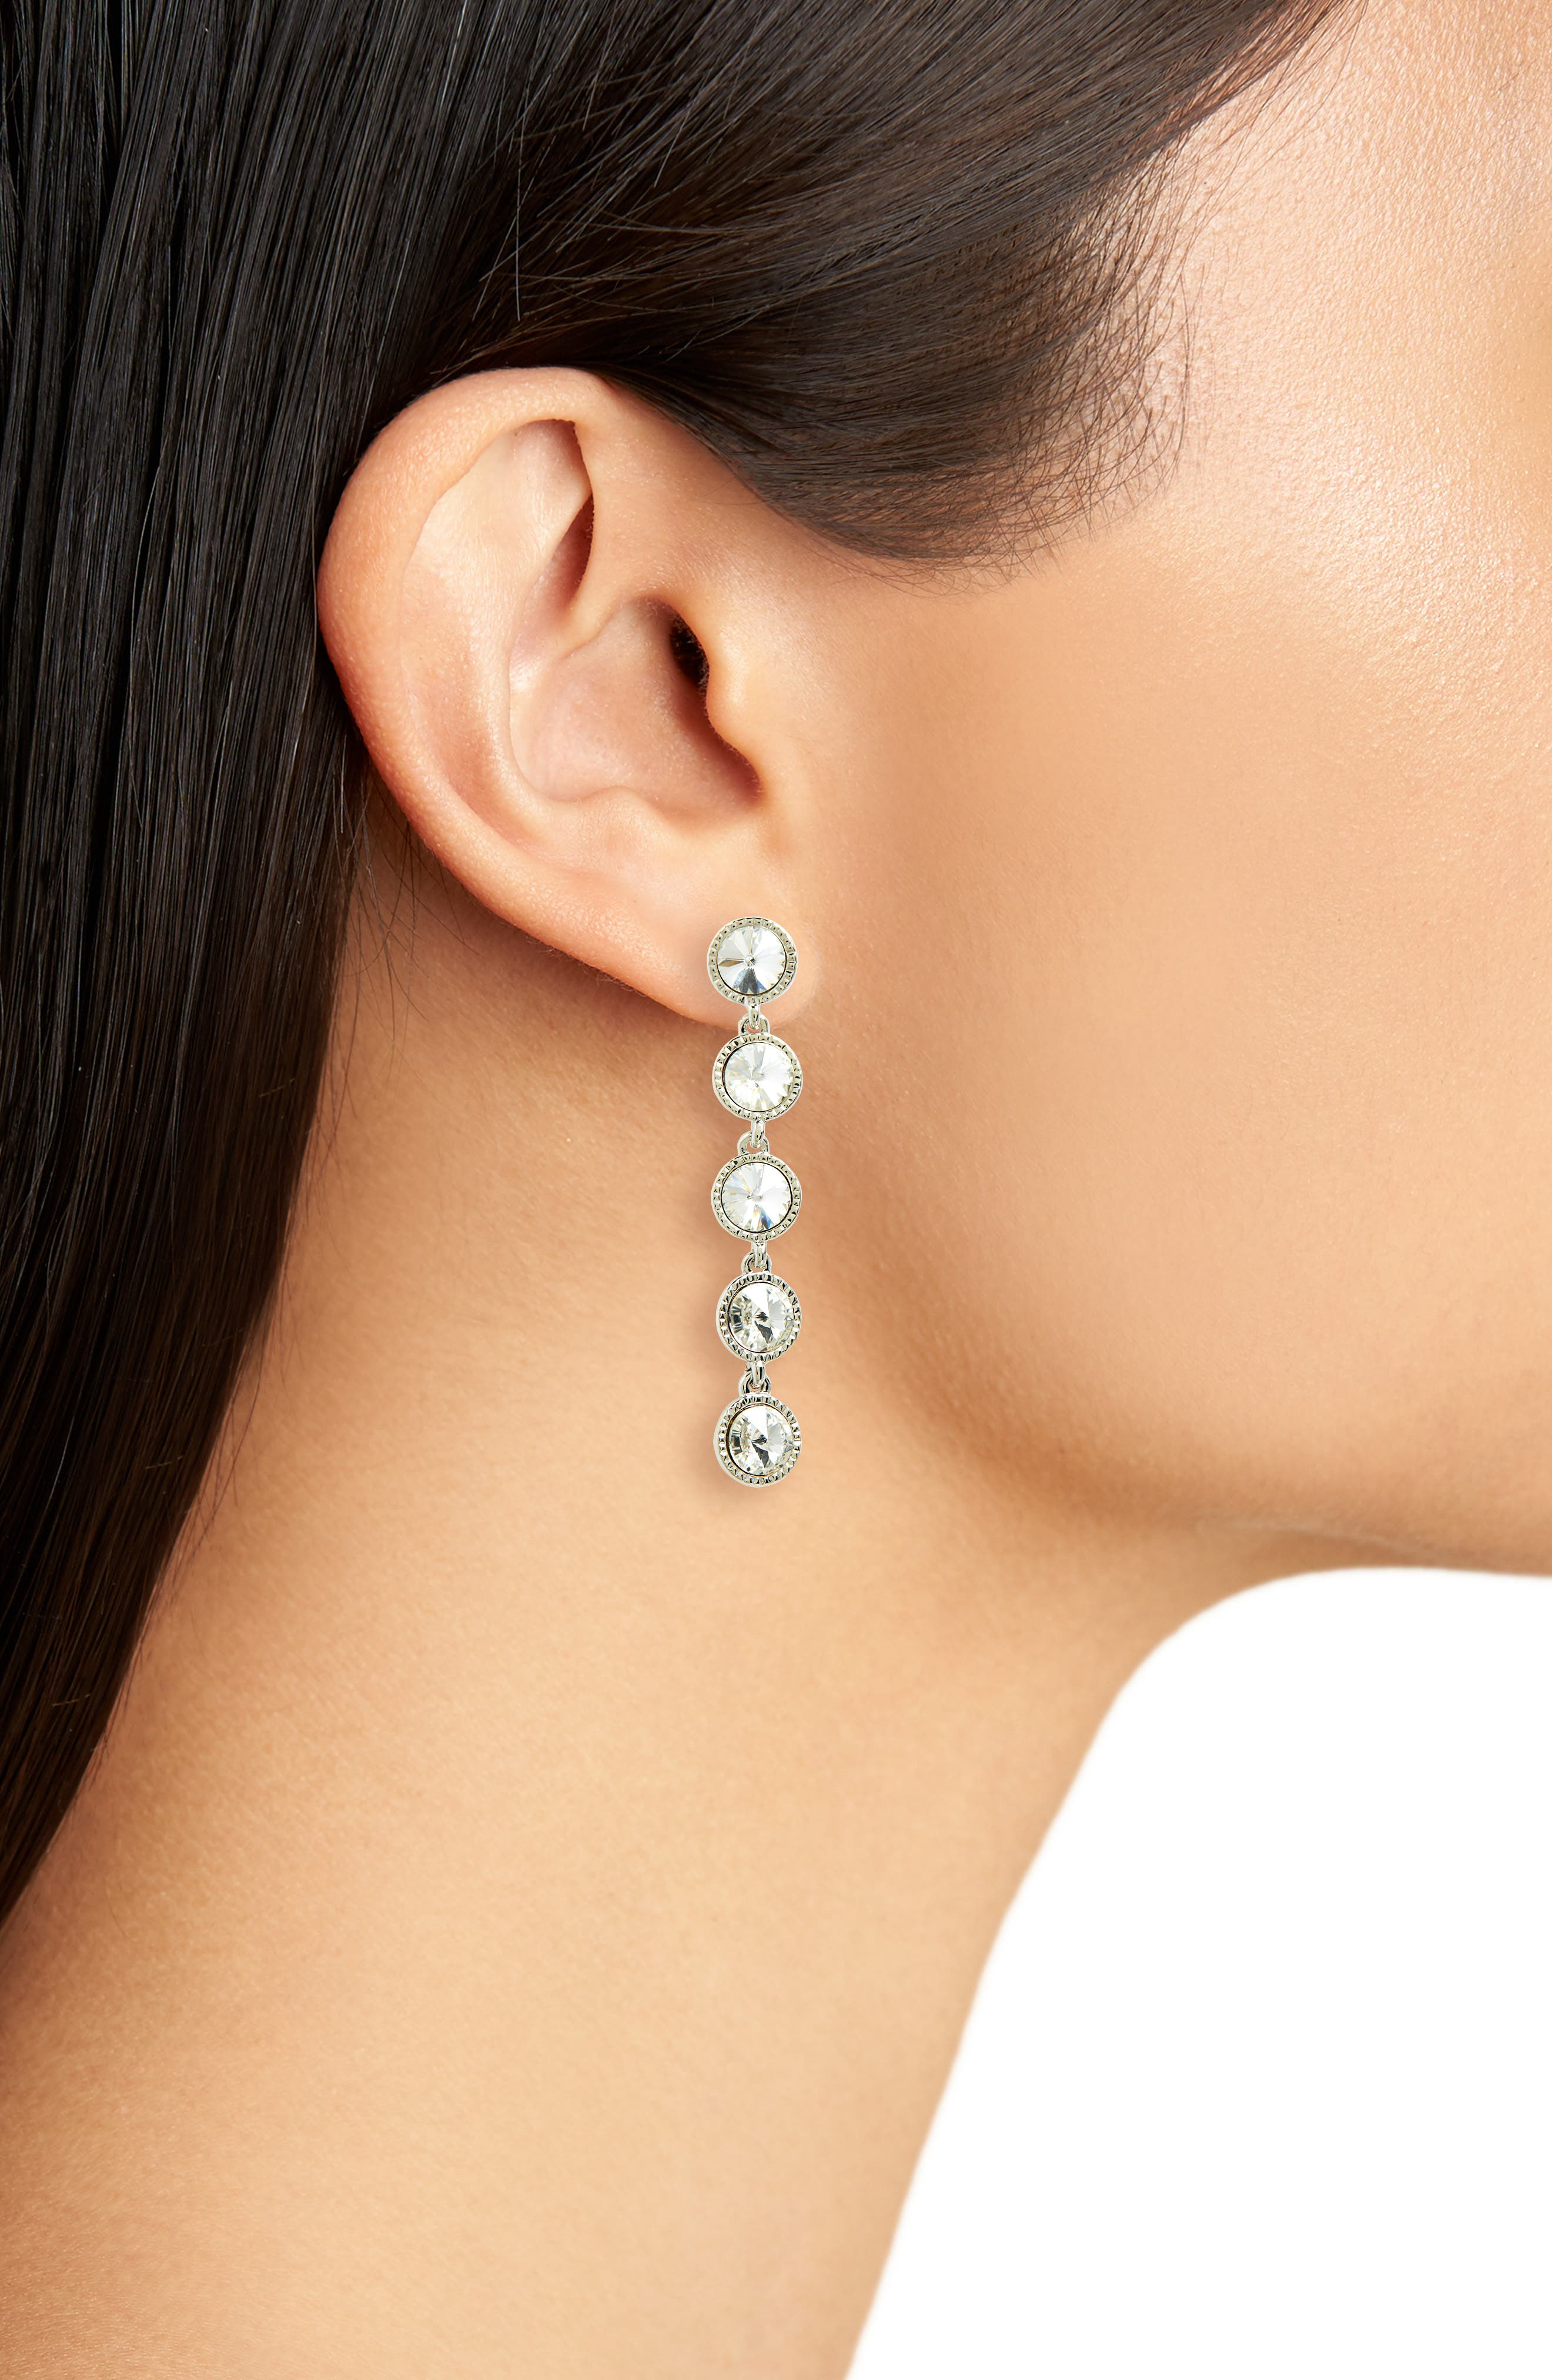 Rizza Crystal Drop Earrings,                             Alternate thumbnail 2, color,                             CRYSTAL